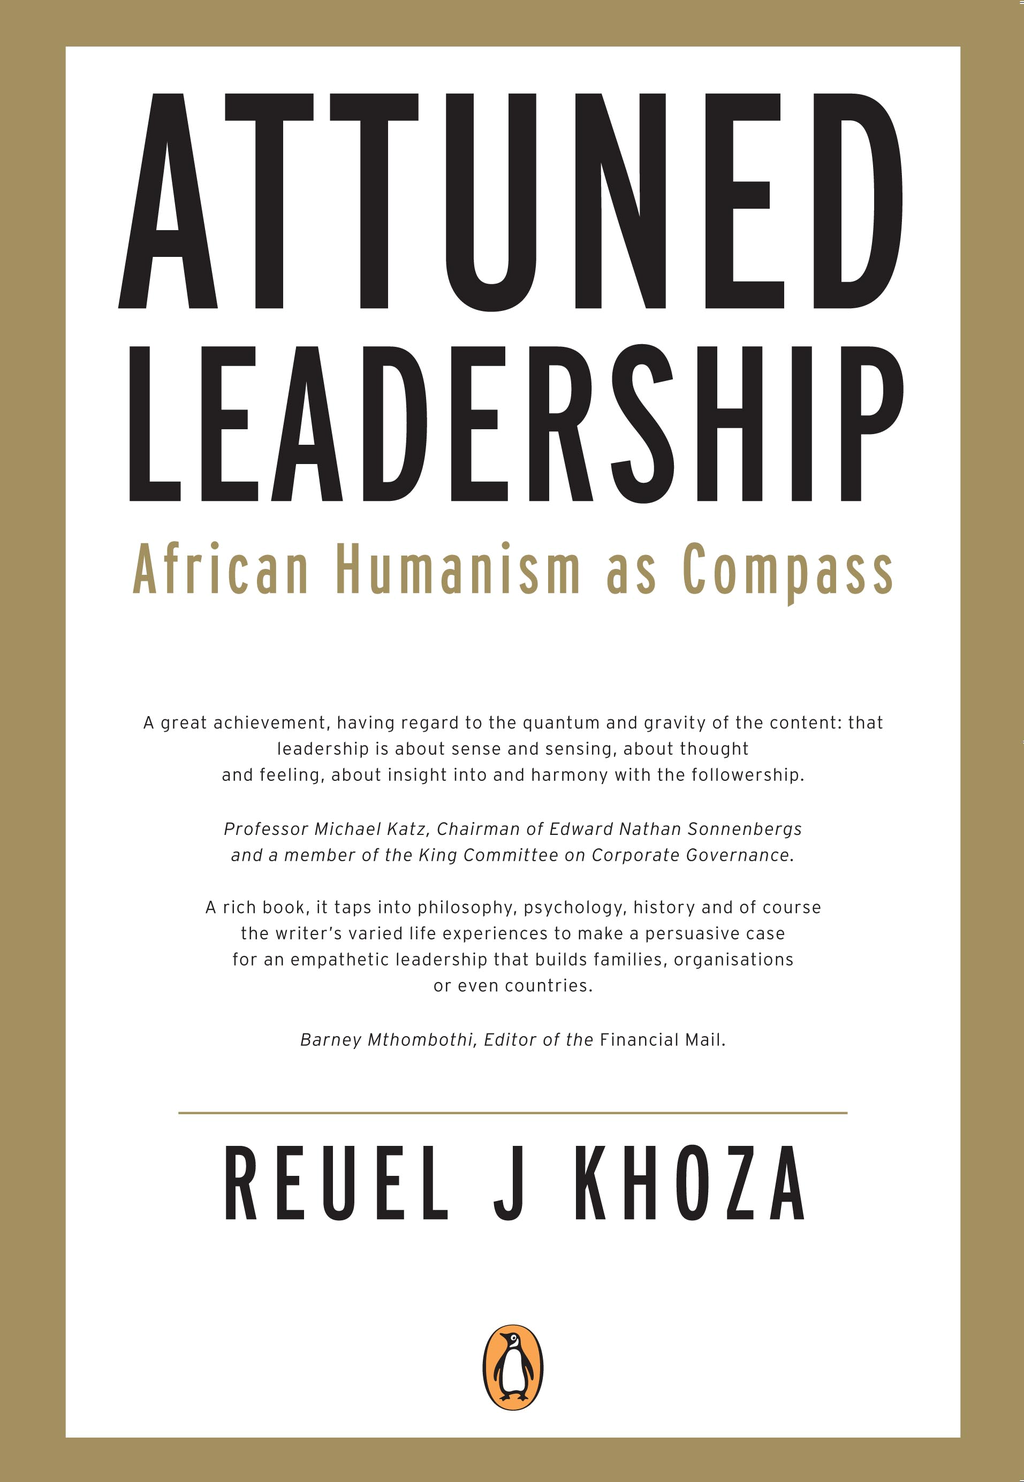 Reuel Khoza - Attuned Leadership